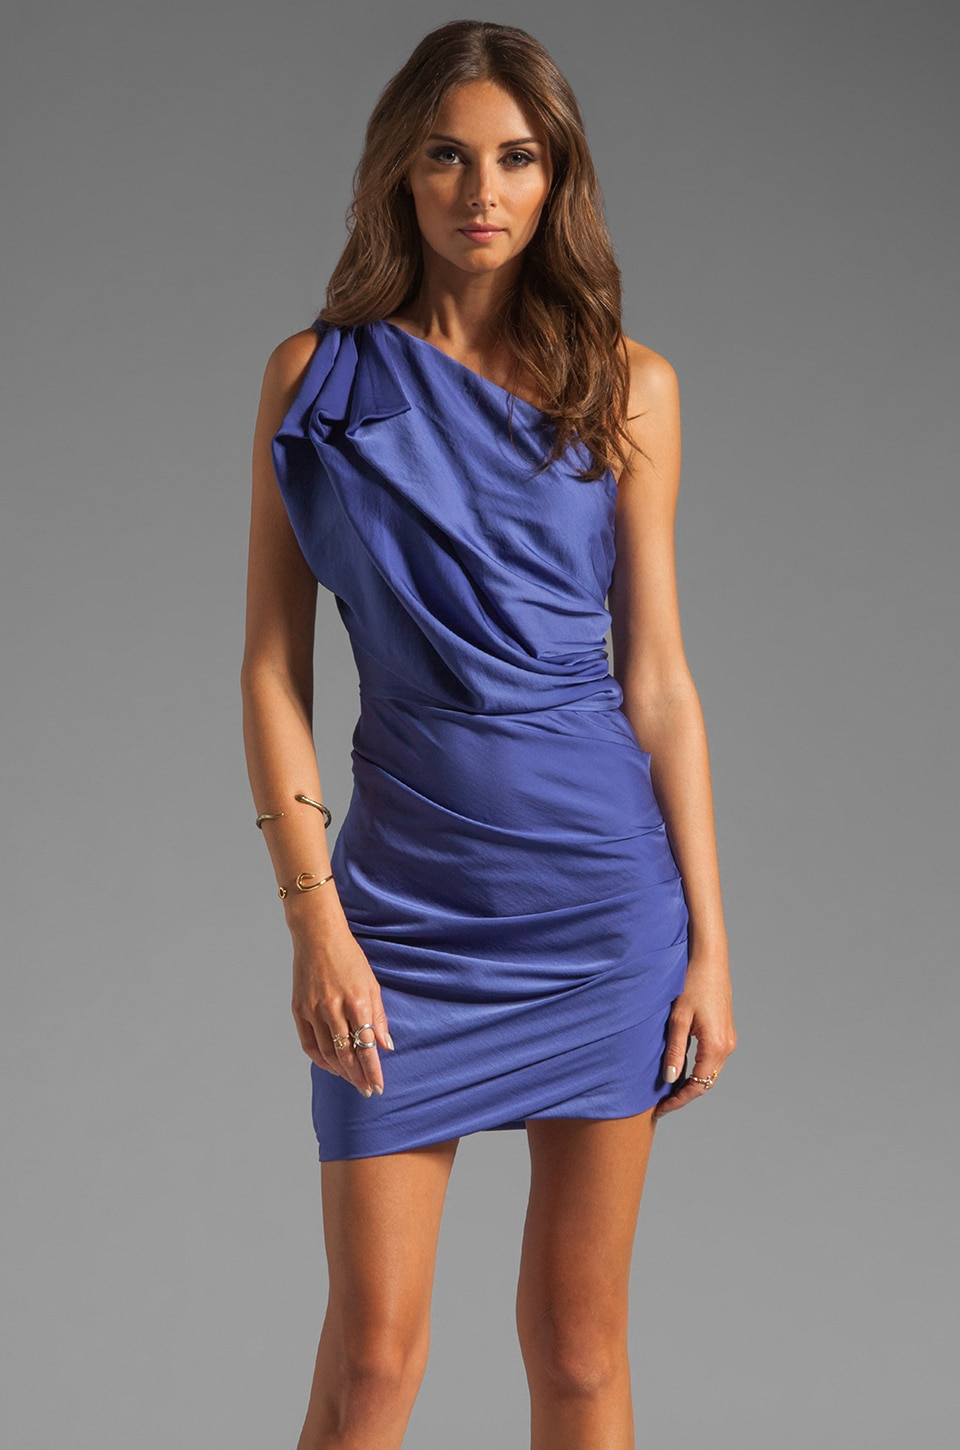 Halston Heritage One Shoulder Dress With Asymmetrical Hem in Violet